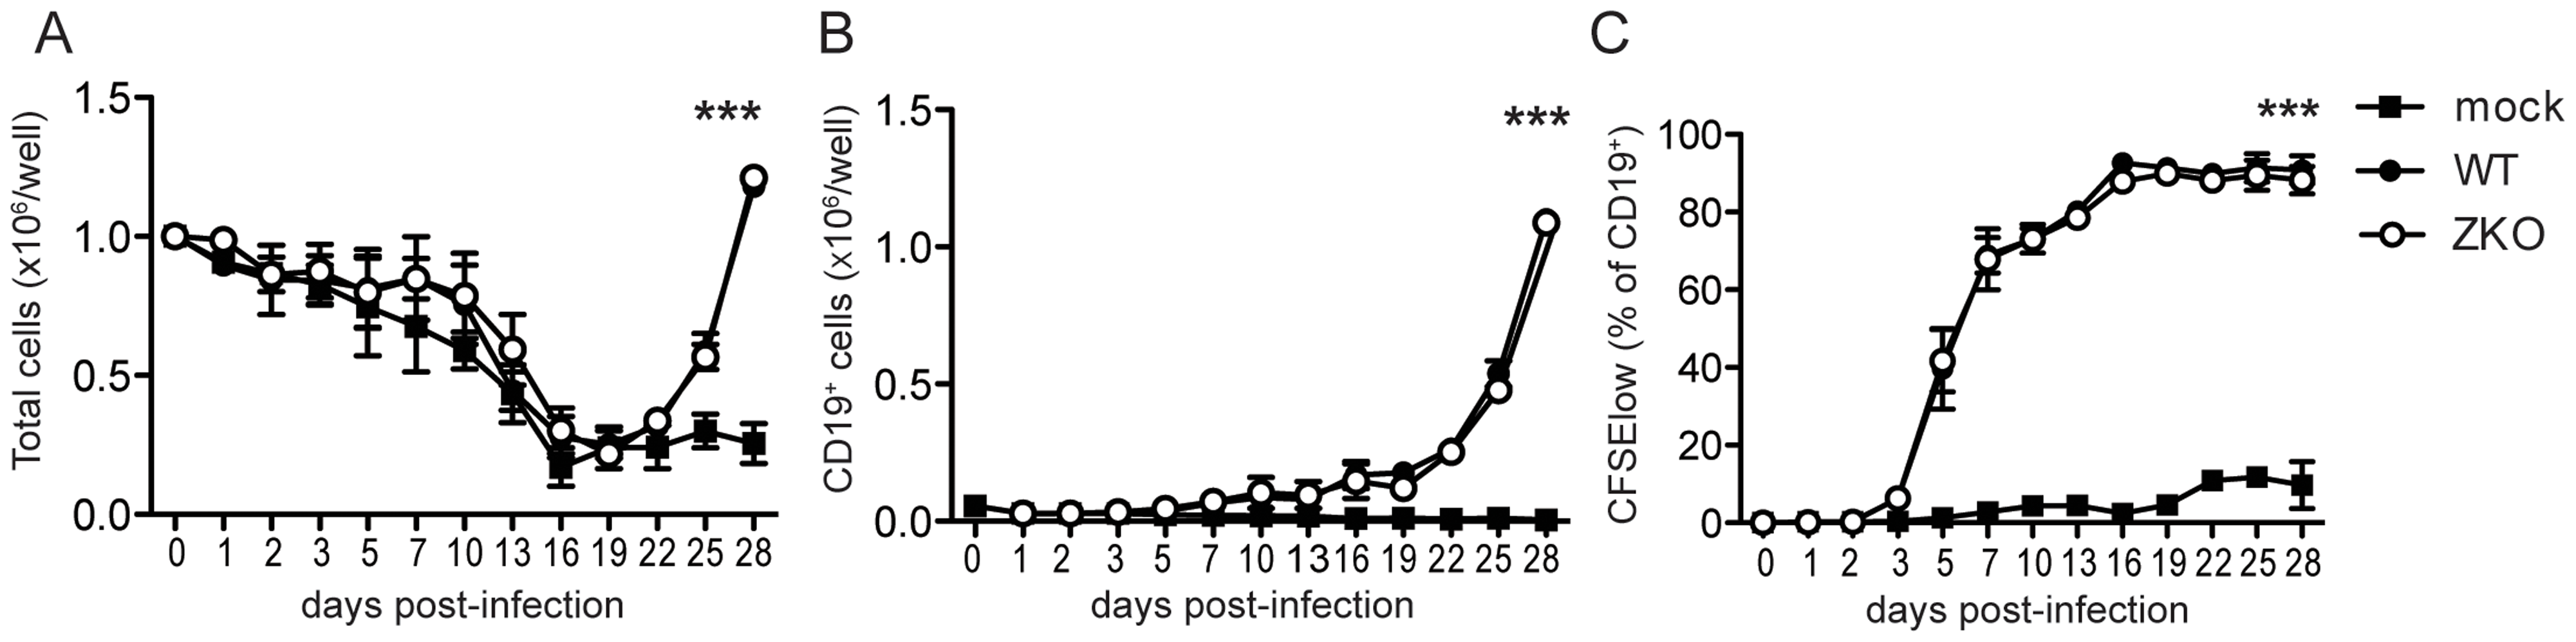 Lytic replication does not significantly contribute to EBV transformation <i>in vitro</i>.